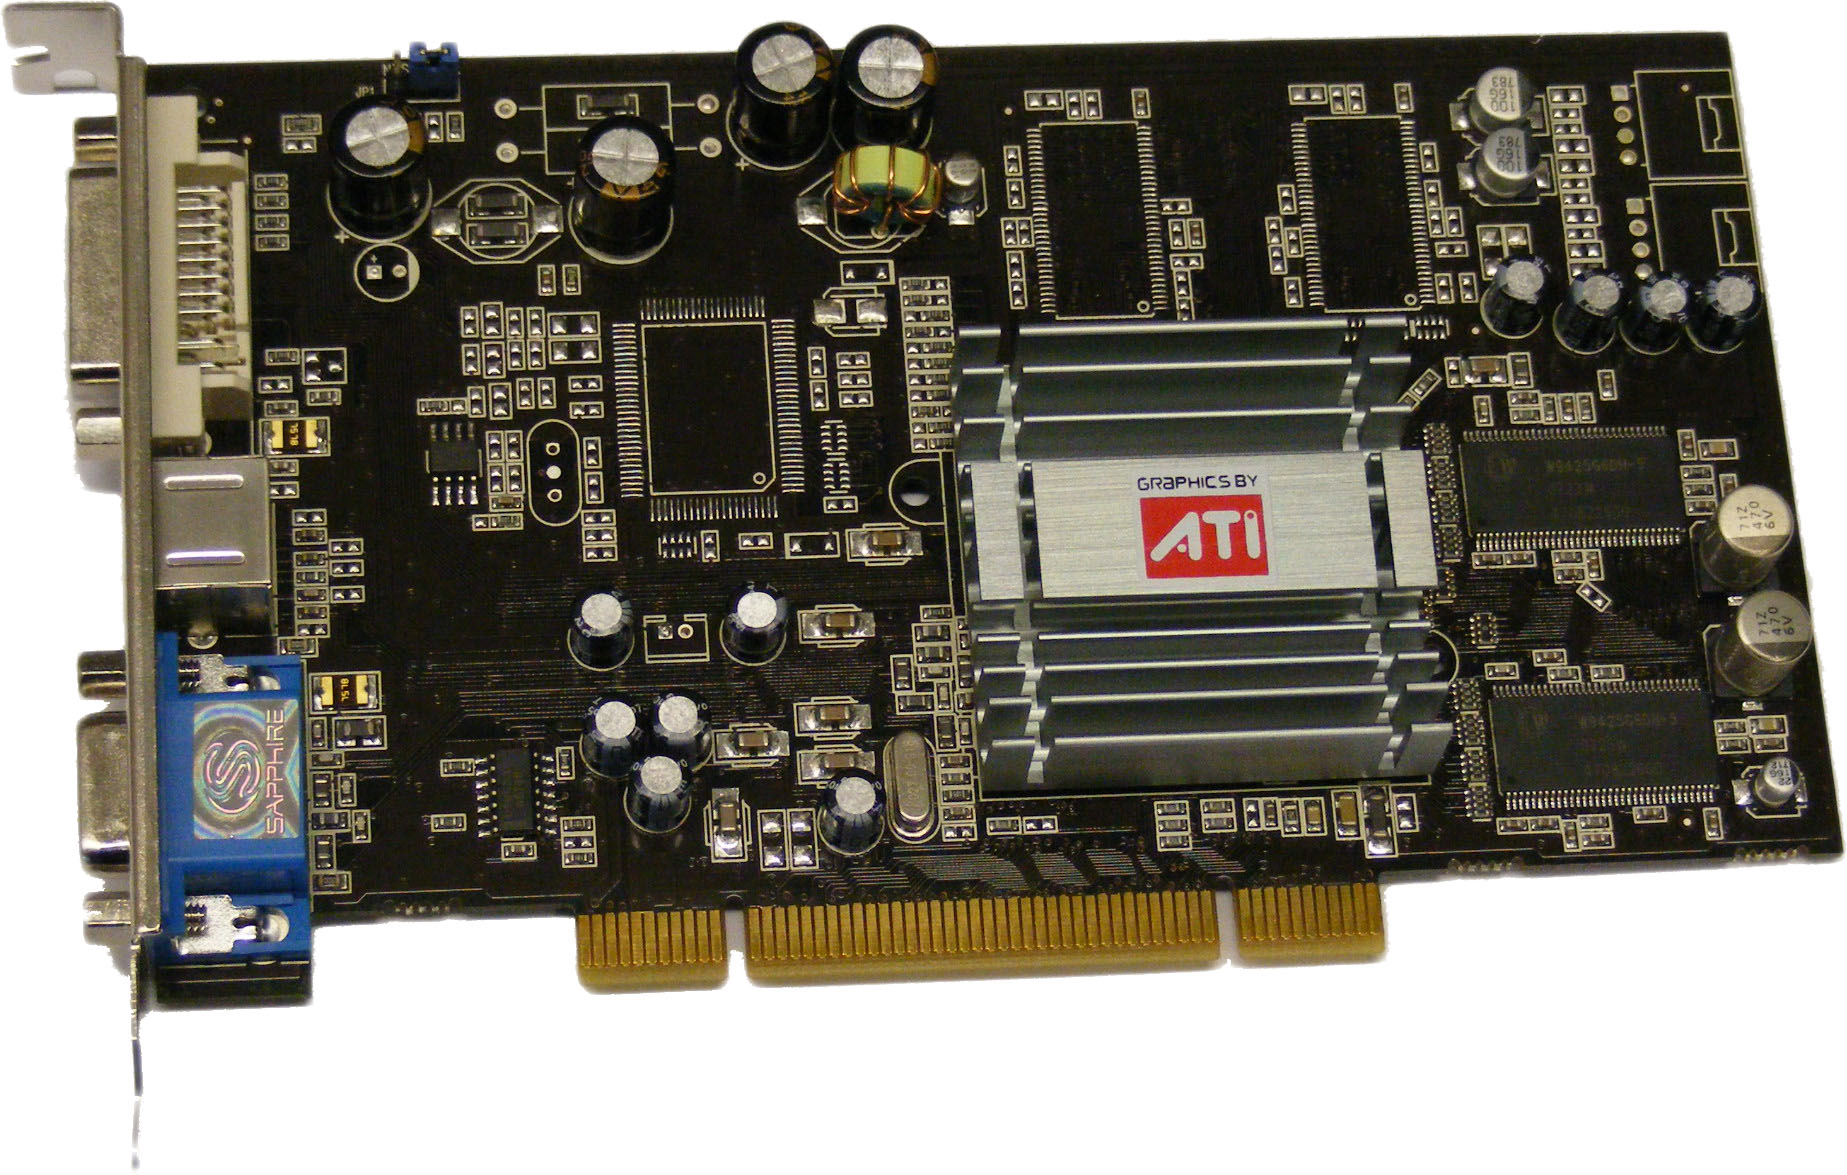 ATI Radeon 9250 graphic card